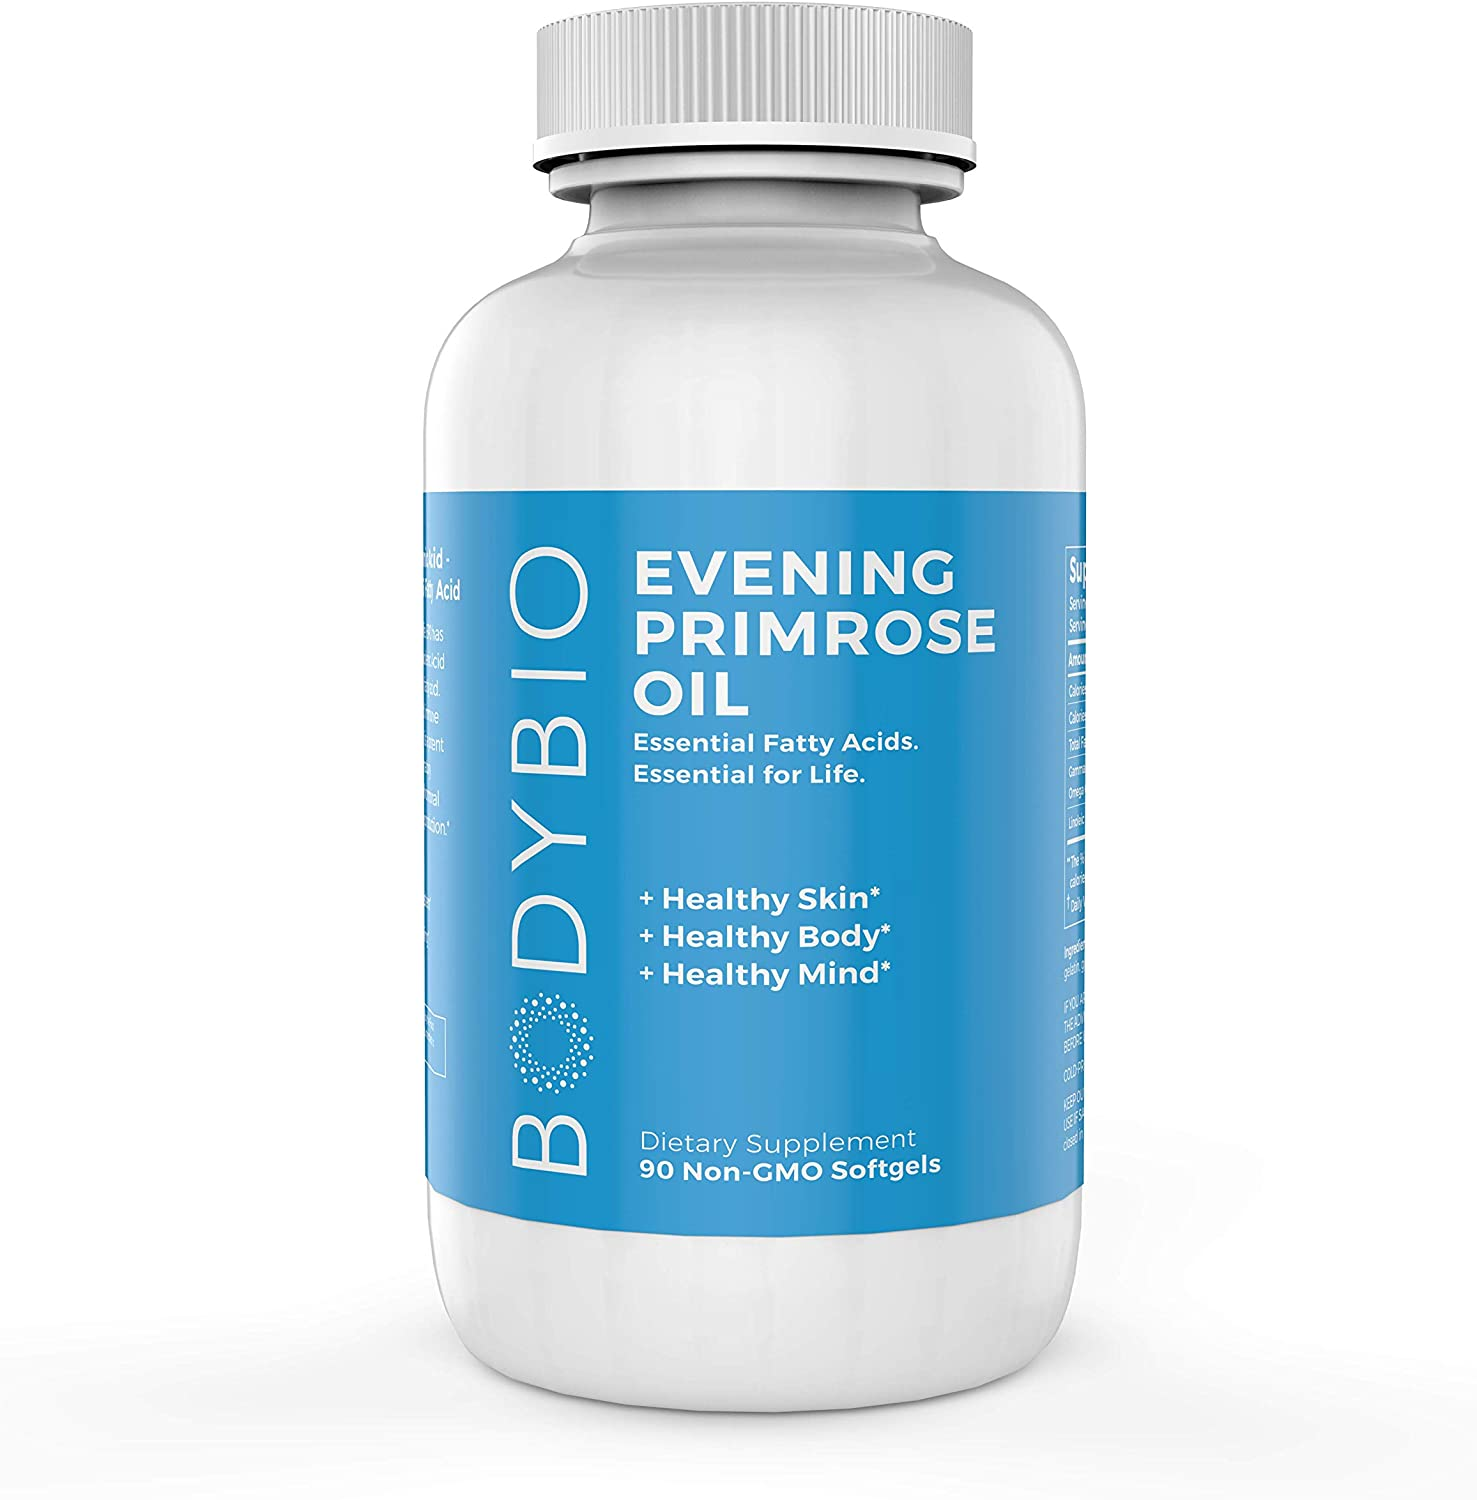 BodyBio – Evening Primrose Oil for Healthy Skin, Immune Support Hormone Balance. Non-GMO, Cold Pressed – 1300mg, 90 Softgels